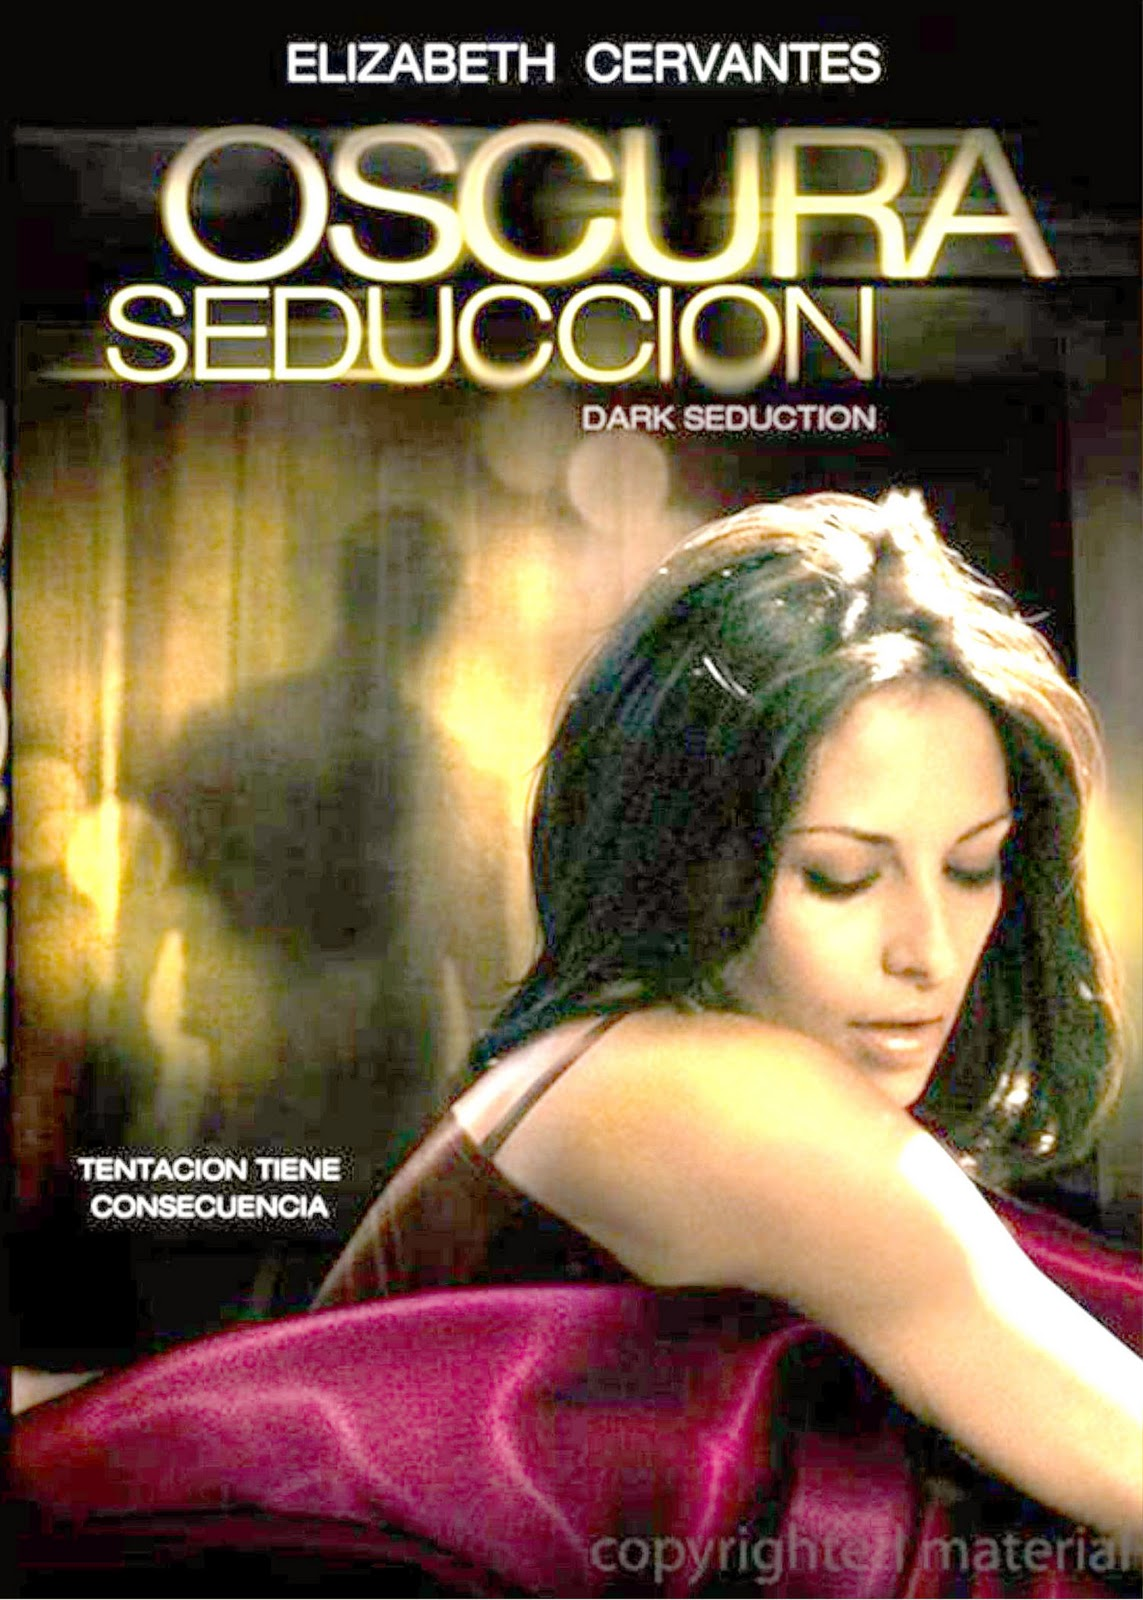 Oscura Seduccion 2010 Watch Movies Online for free in hd